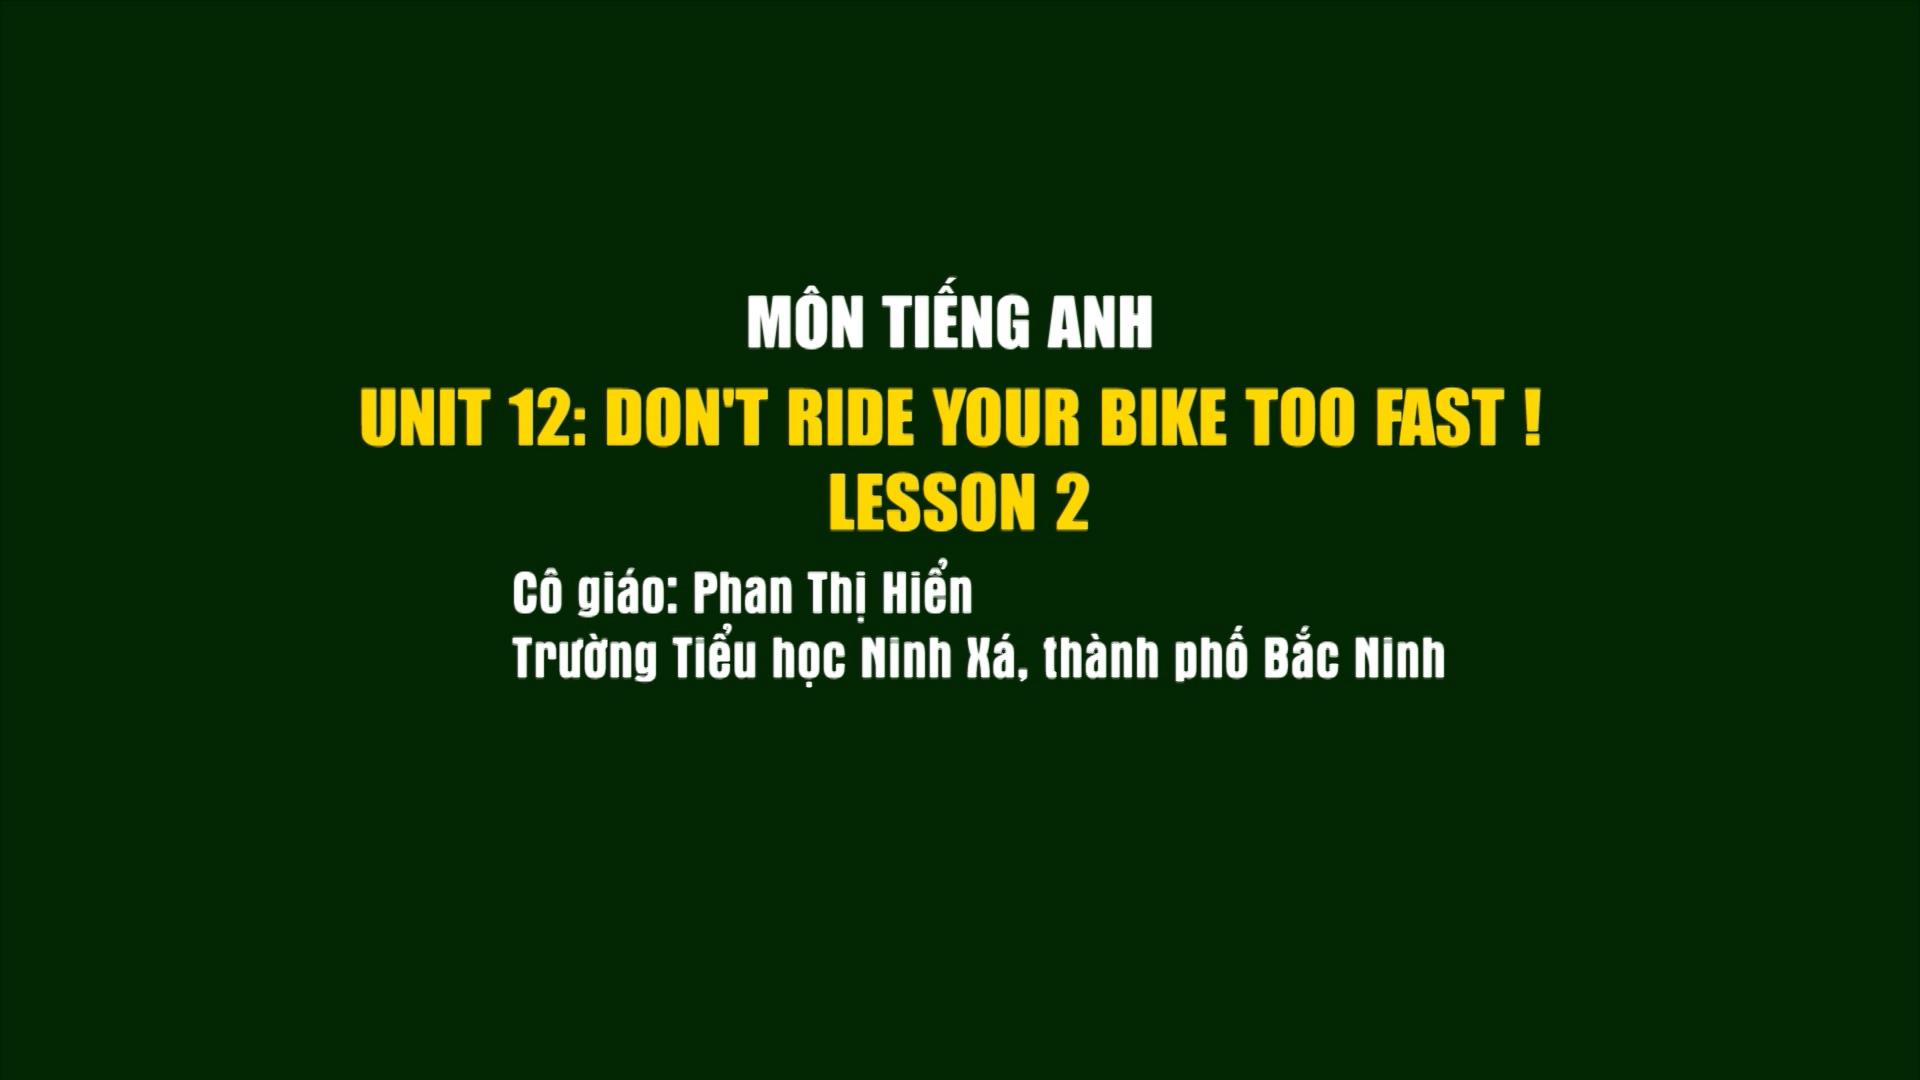 Tiếng anh lớp 5: Unit Don't ride your bike too fast! Lesson 2